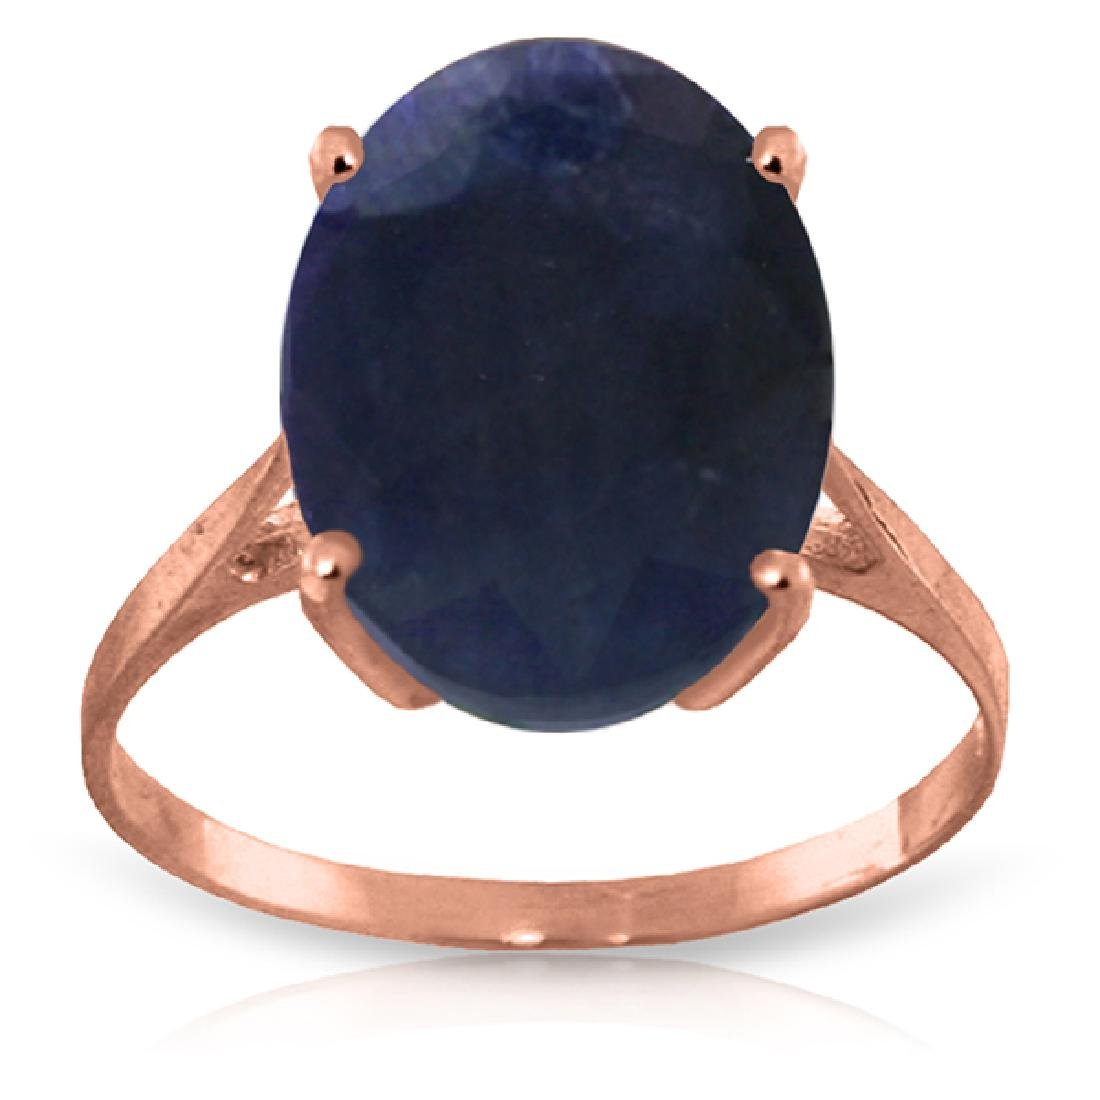 Genuine 8.5 ctw Sapphire Ring Jewelry 14KT Rose Gold -